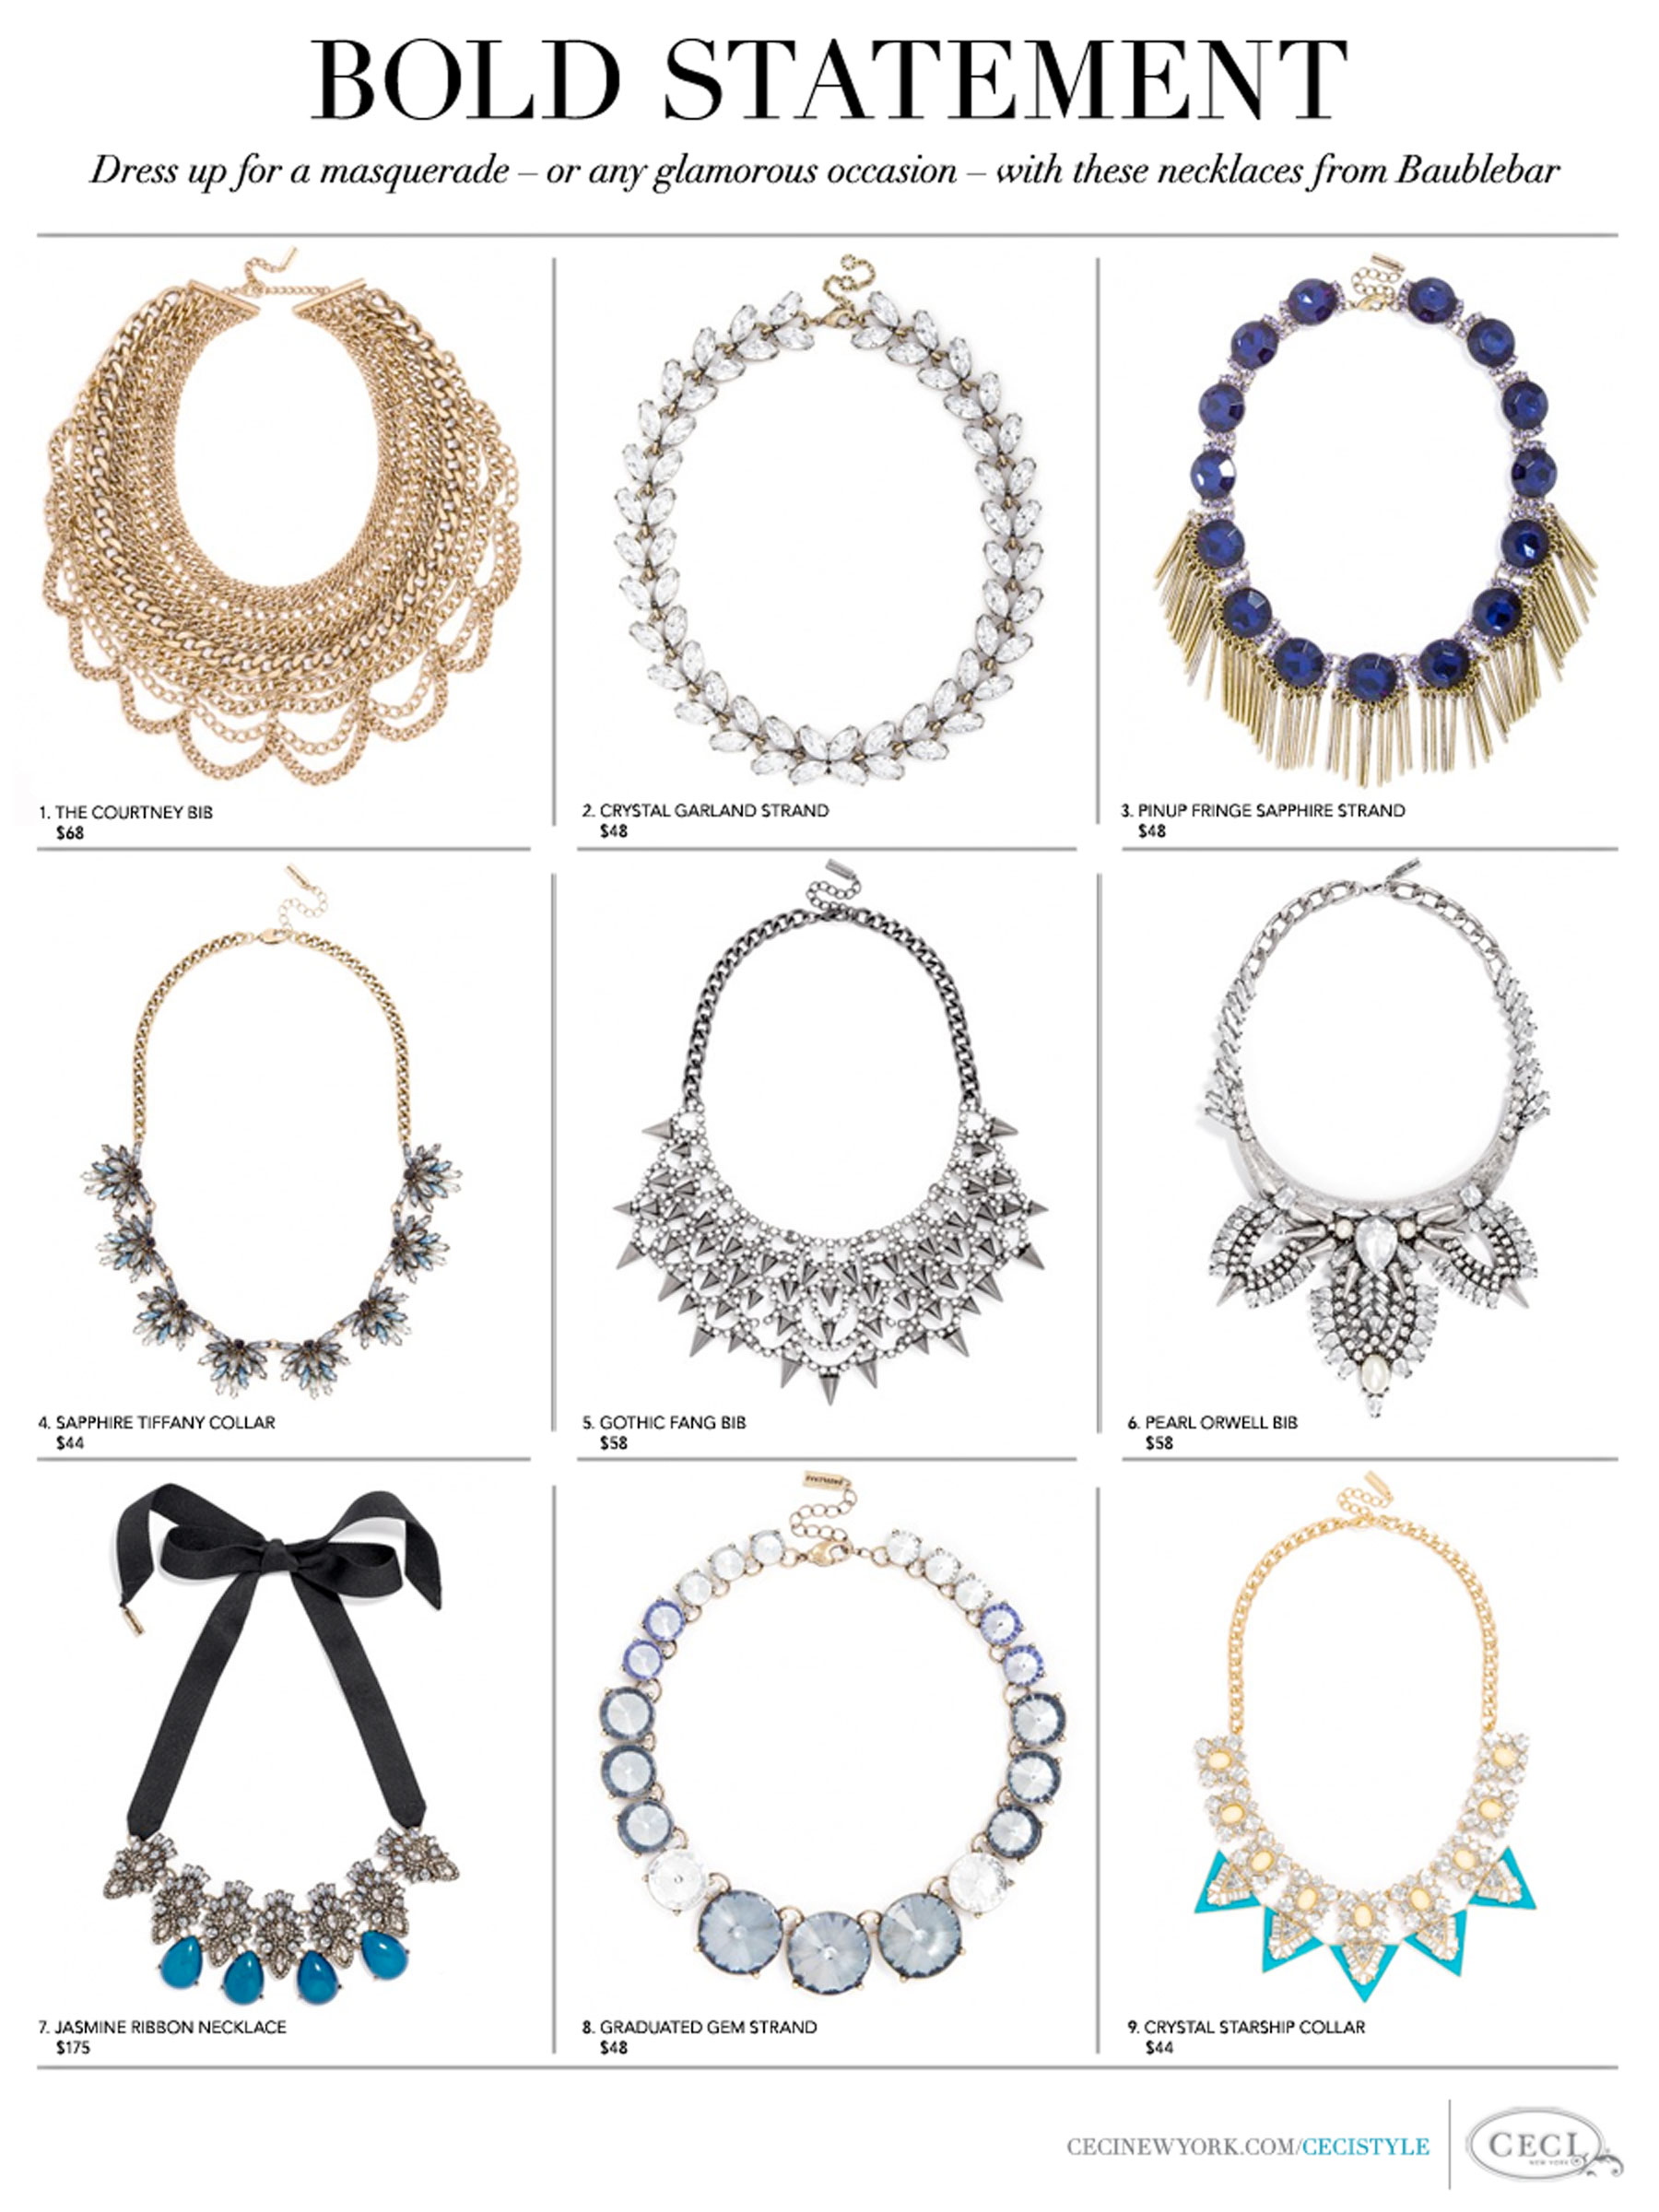 Stylish Statement Necklaces by Baublebar - Dress up for a masquerade – or any glamorous occasion – with these necklaces from Baublebar